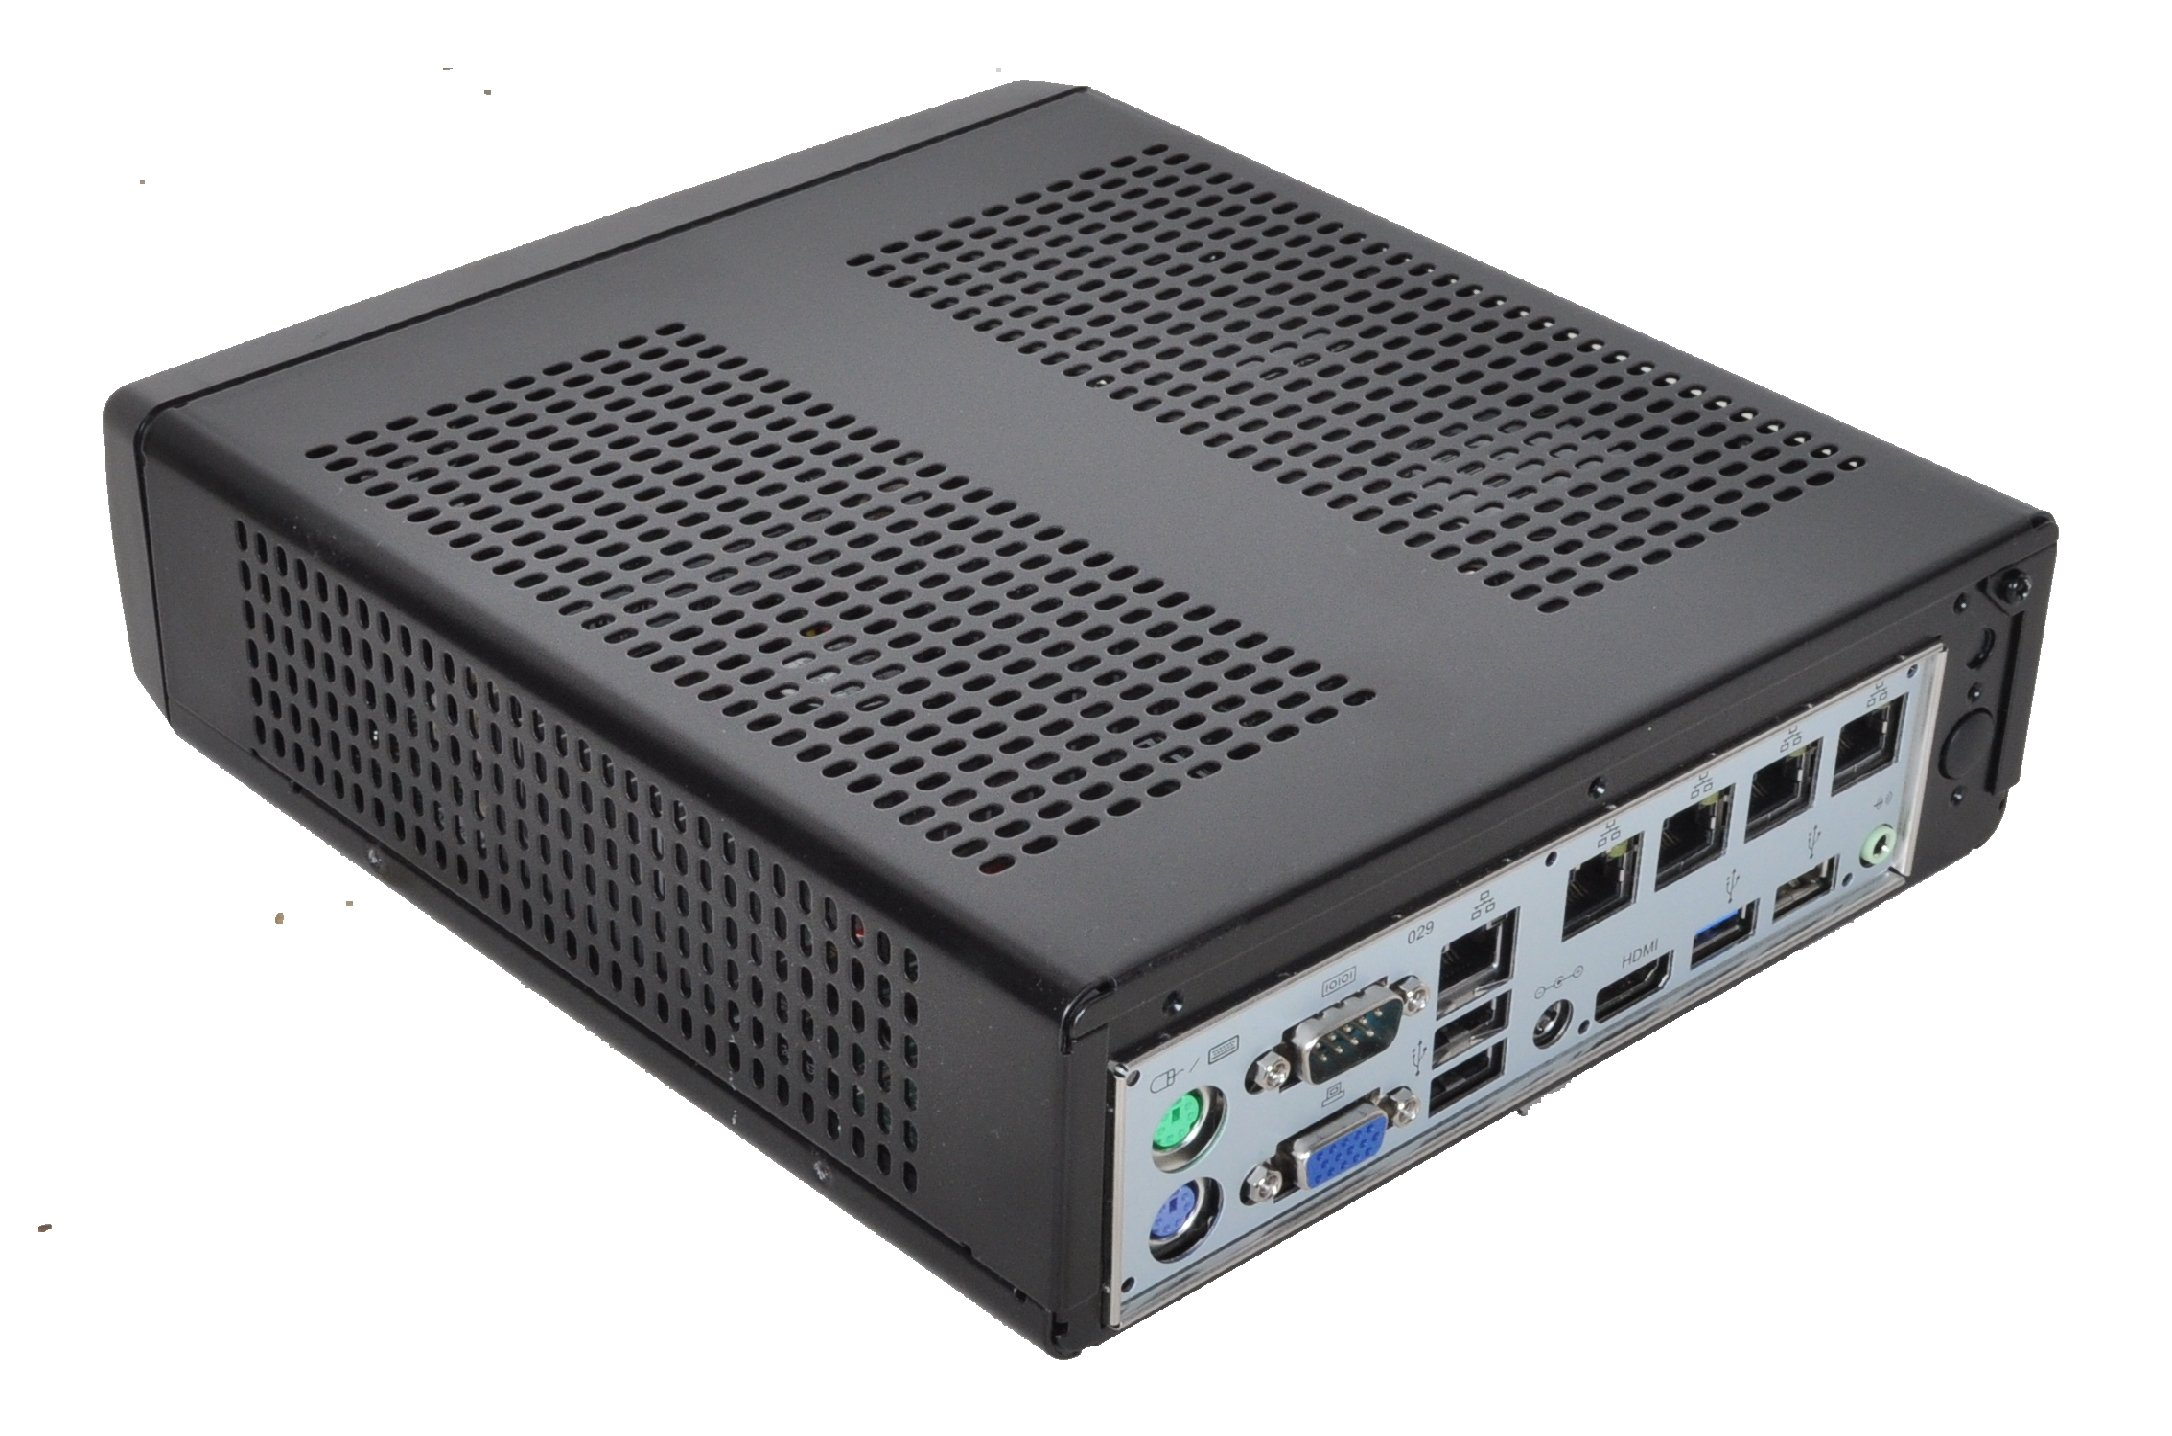 Mini ITX pfSense Firewall with 7.5W Quad Core 1.83Ghz Celeron CPU, 5x GBe NIC's, 64Gb SSD, 4Gb DDR3 RAM, Pre-Loaded with 64 bit pfSense 2.2 by Mobile Computing Solutions